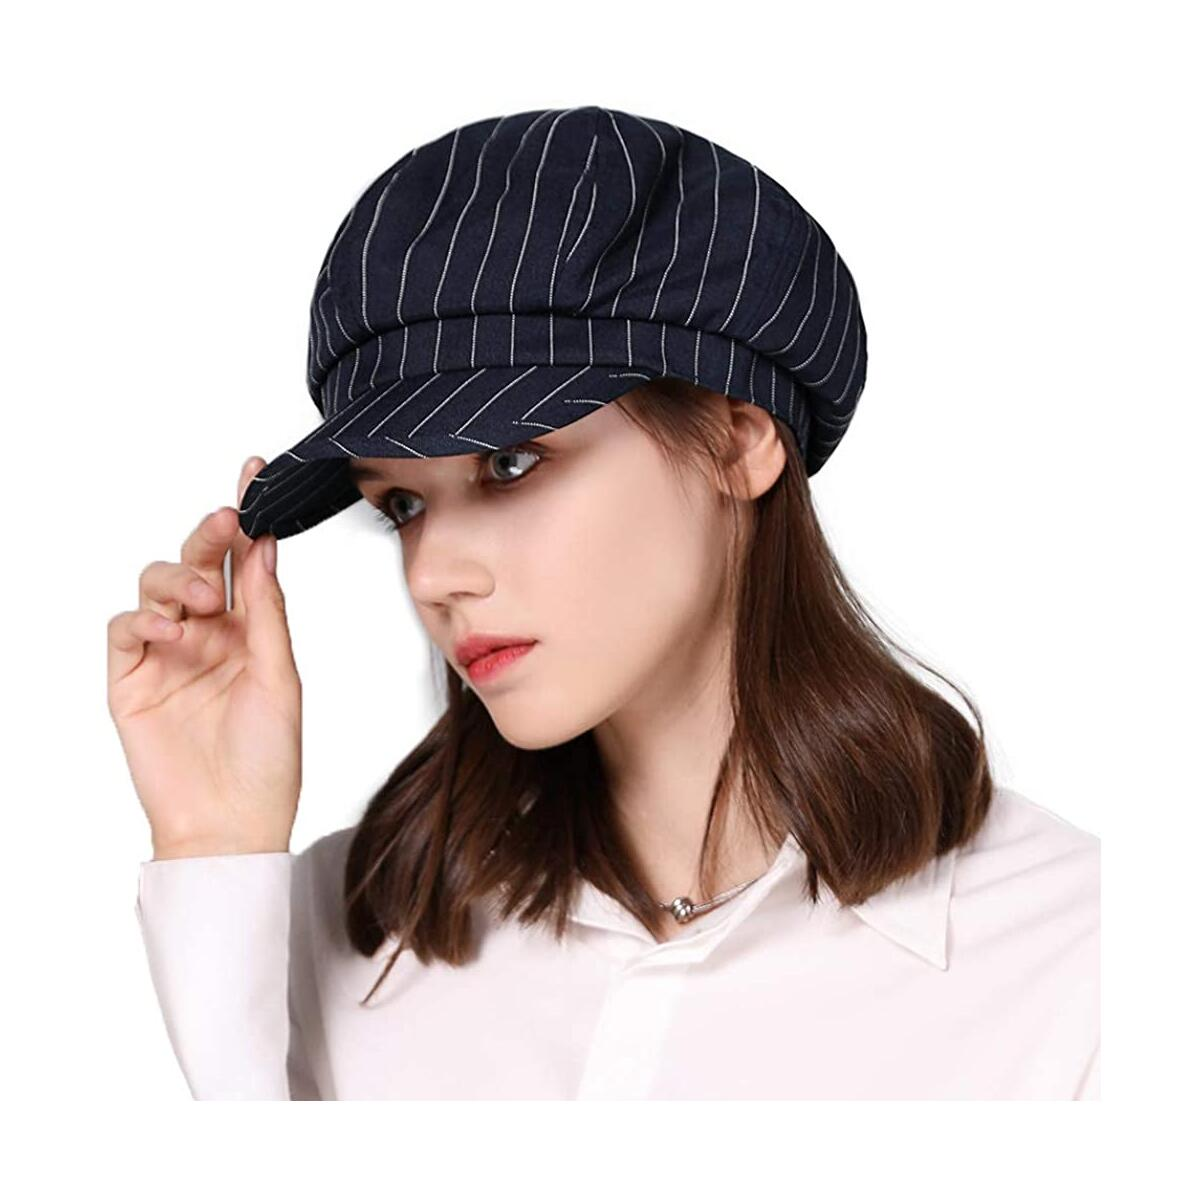 Fancet Packable Beret Newsboy Cap for Women Spring Summer Winter Gatsby Visor Hat 55-59 cm